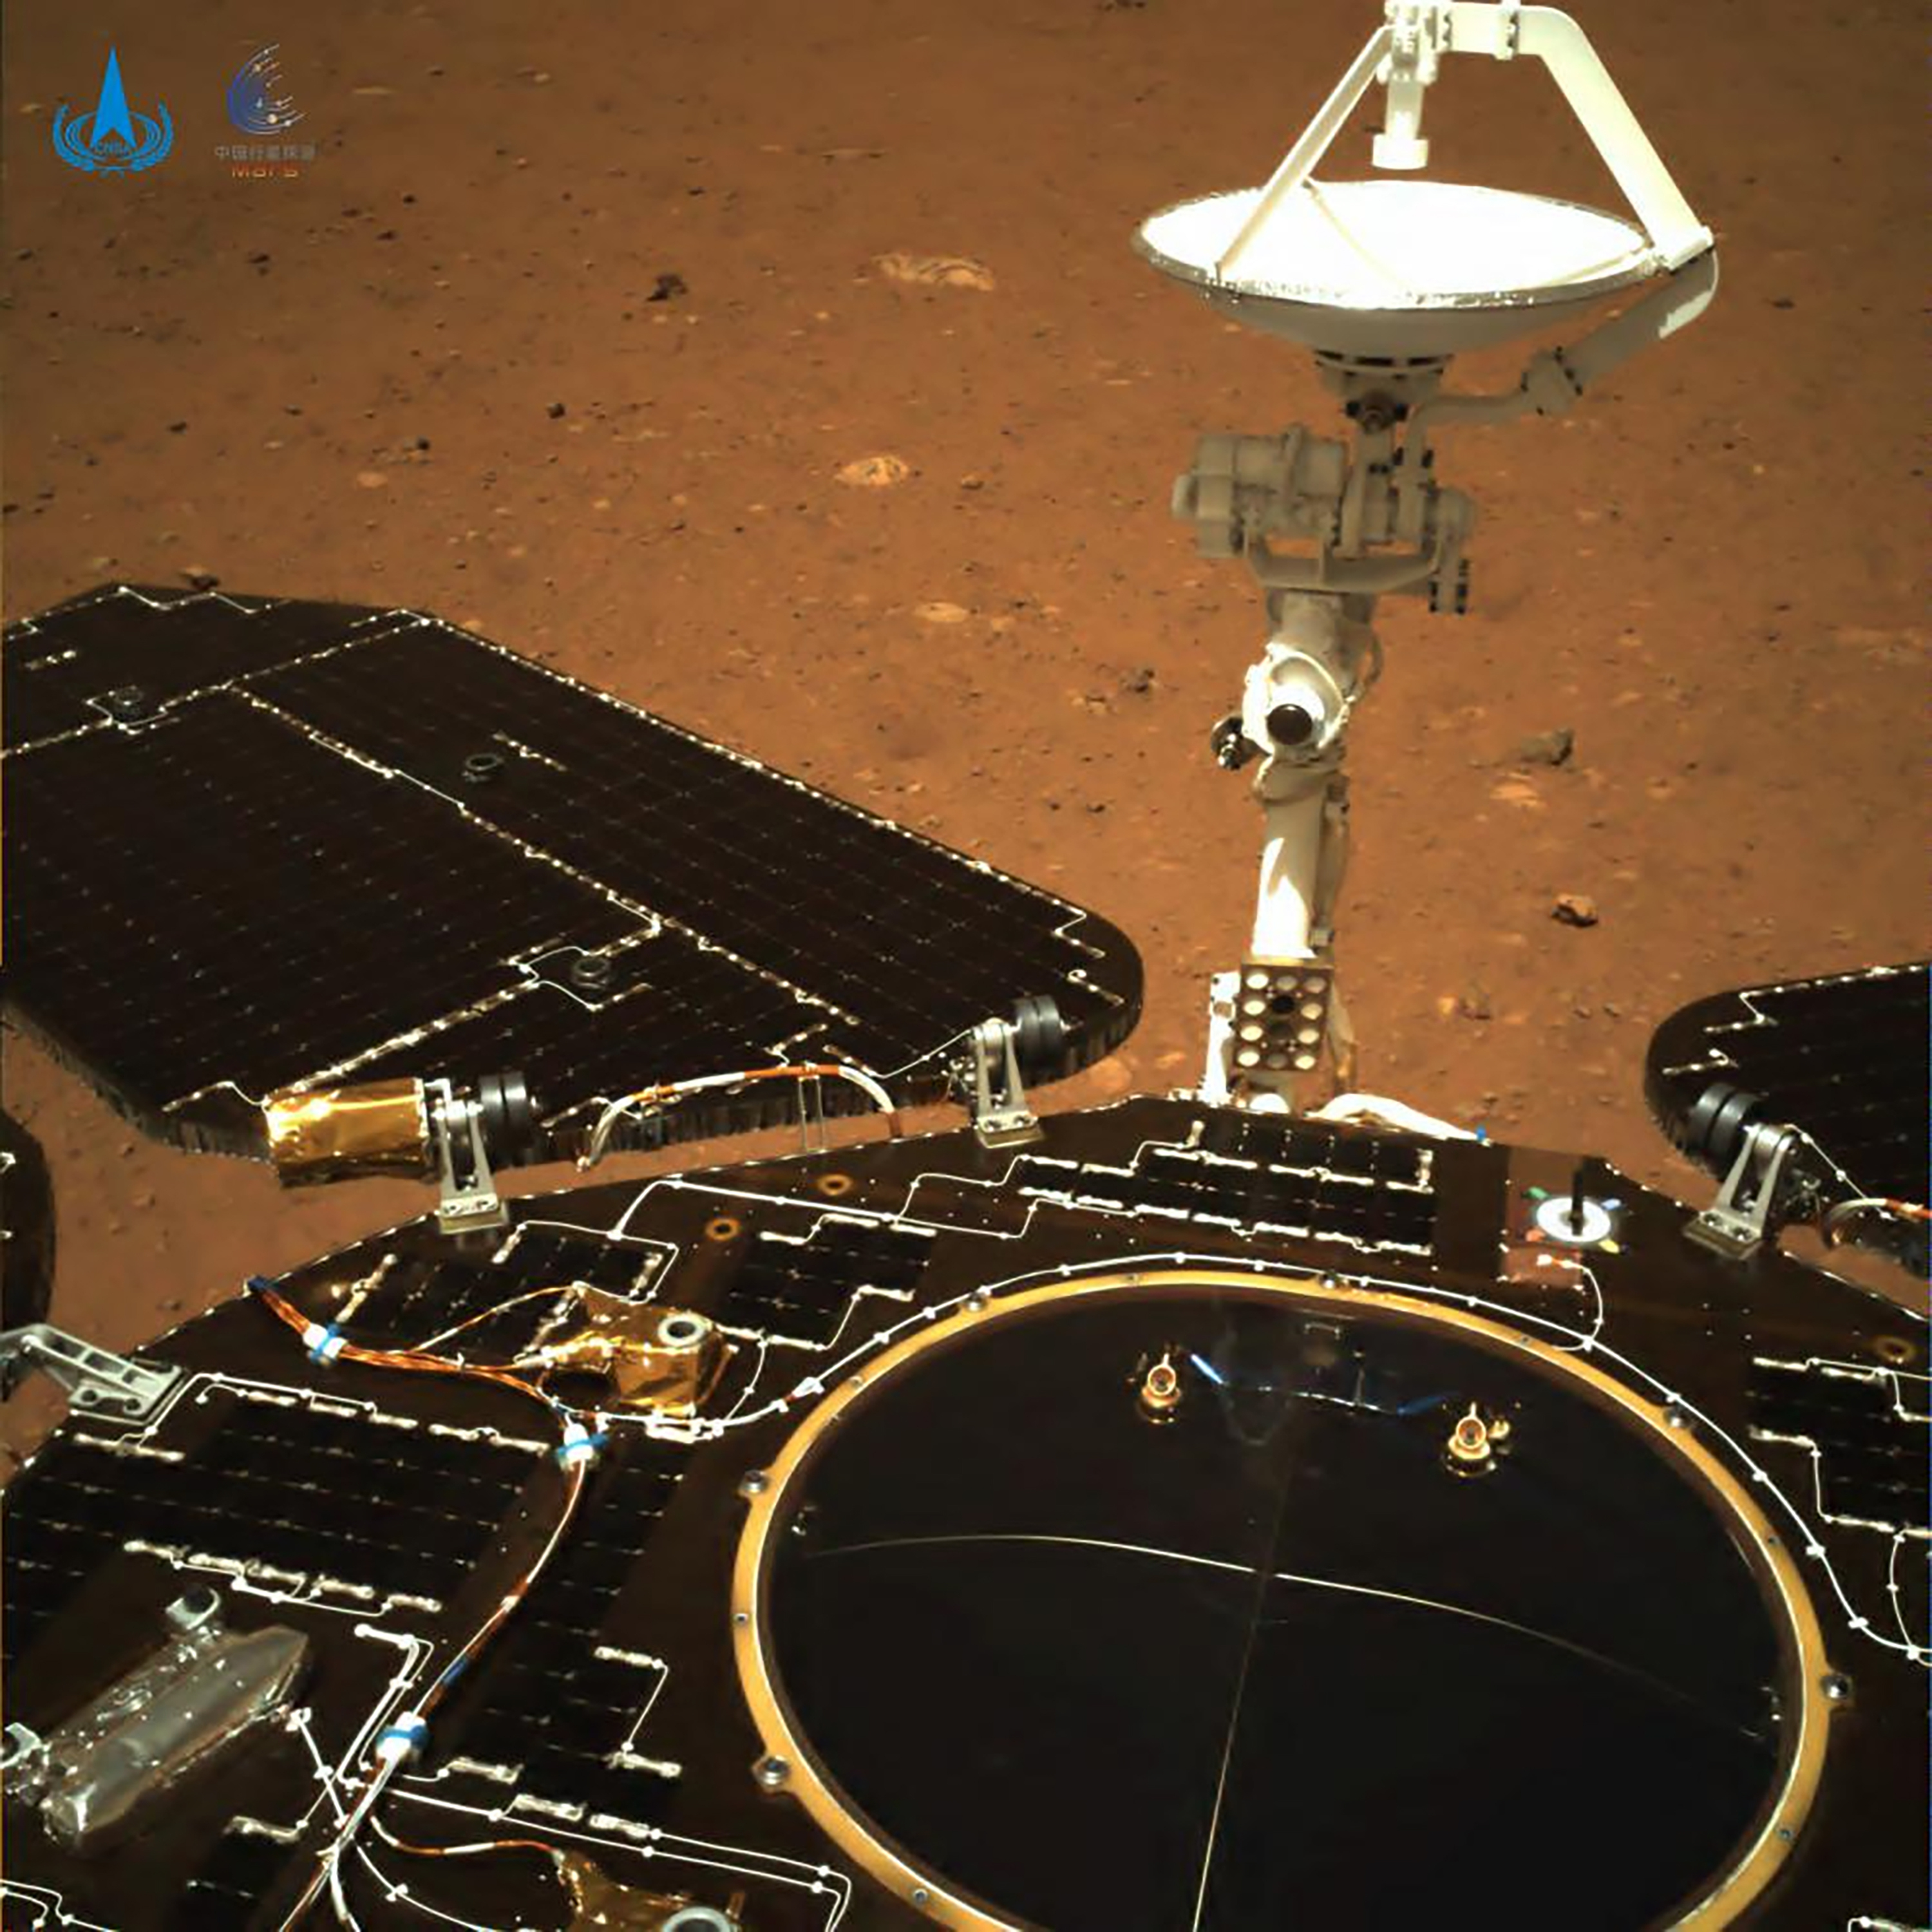 The rover's solar panels and antenna are deployed as the rover sits on its lander on the surface of Mars  - 0ead4d1e 7d20 469b 8cb1 09b465508869 - China delays mission to its new space station